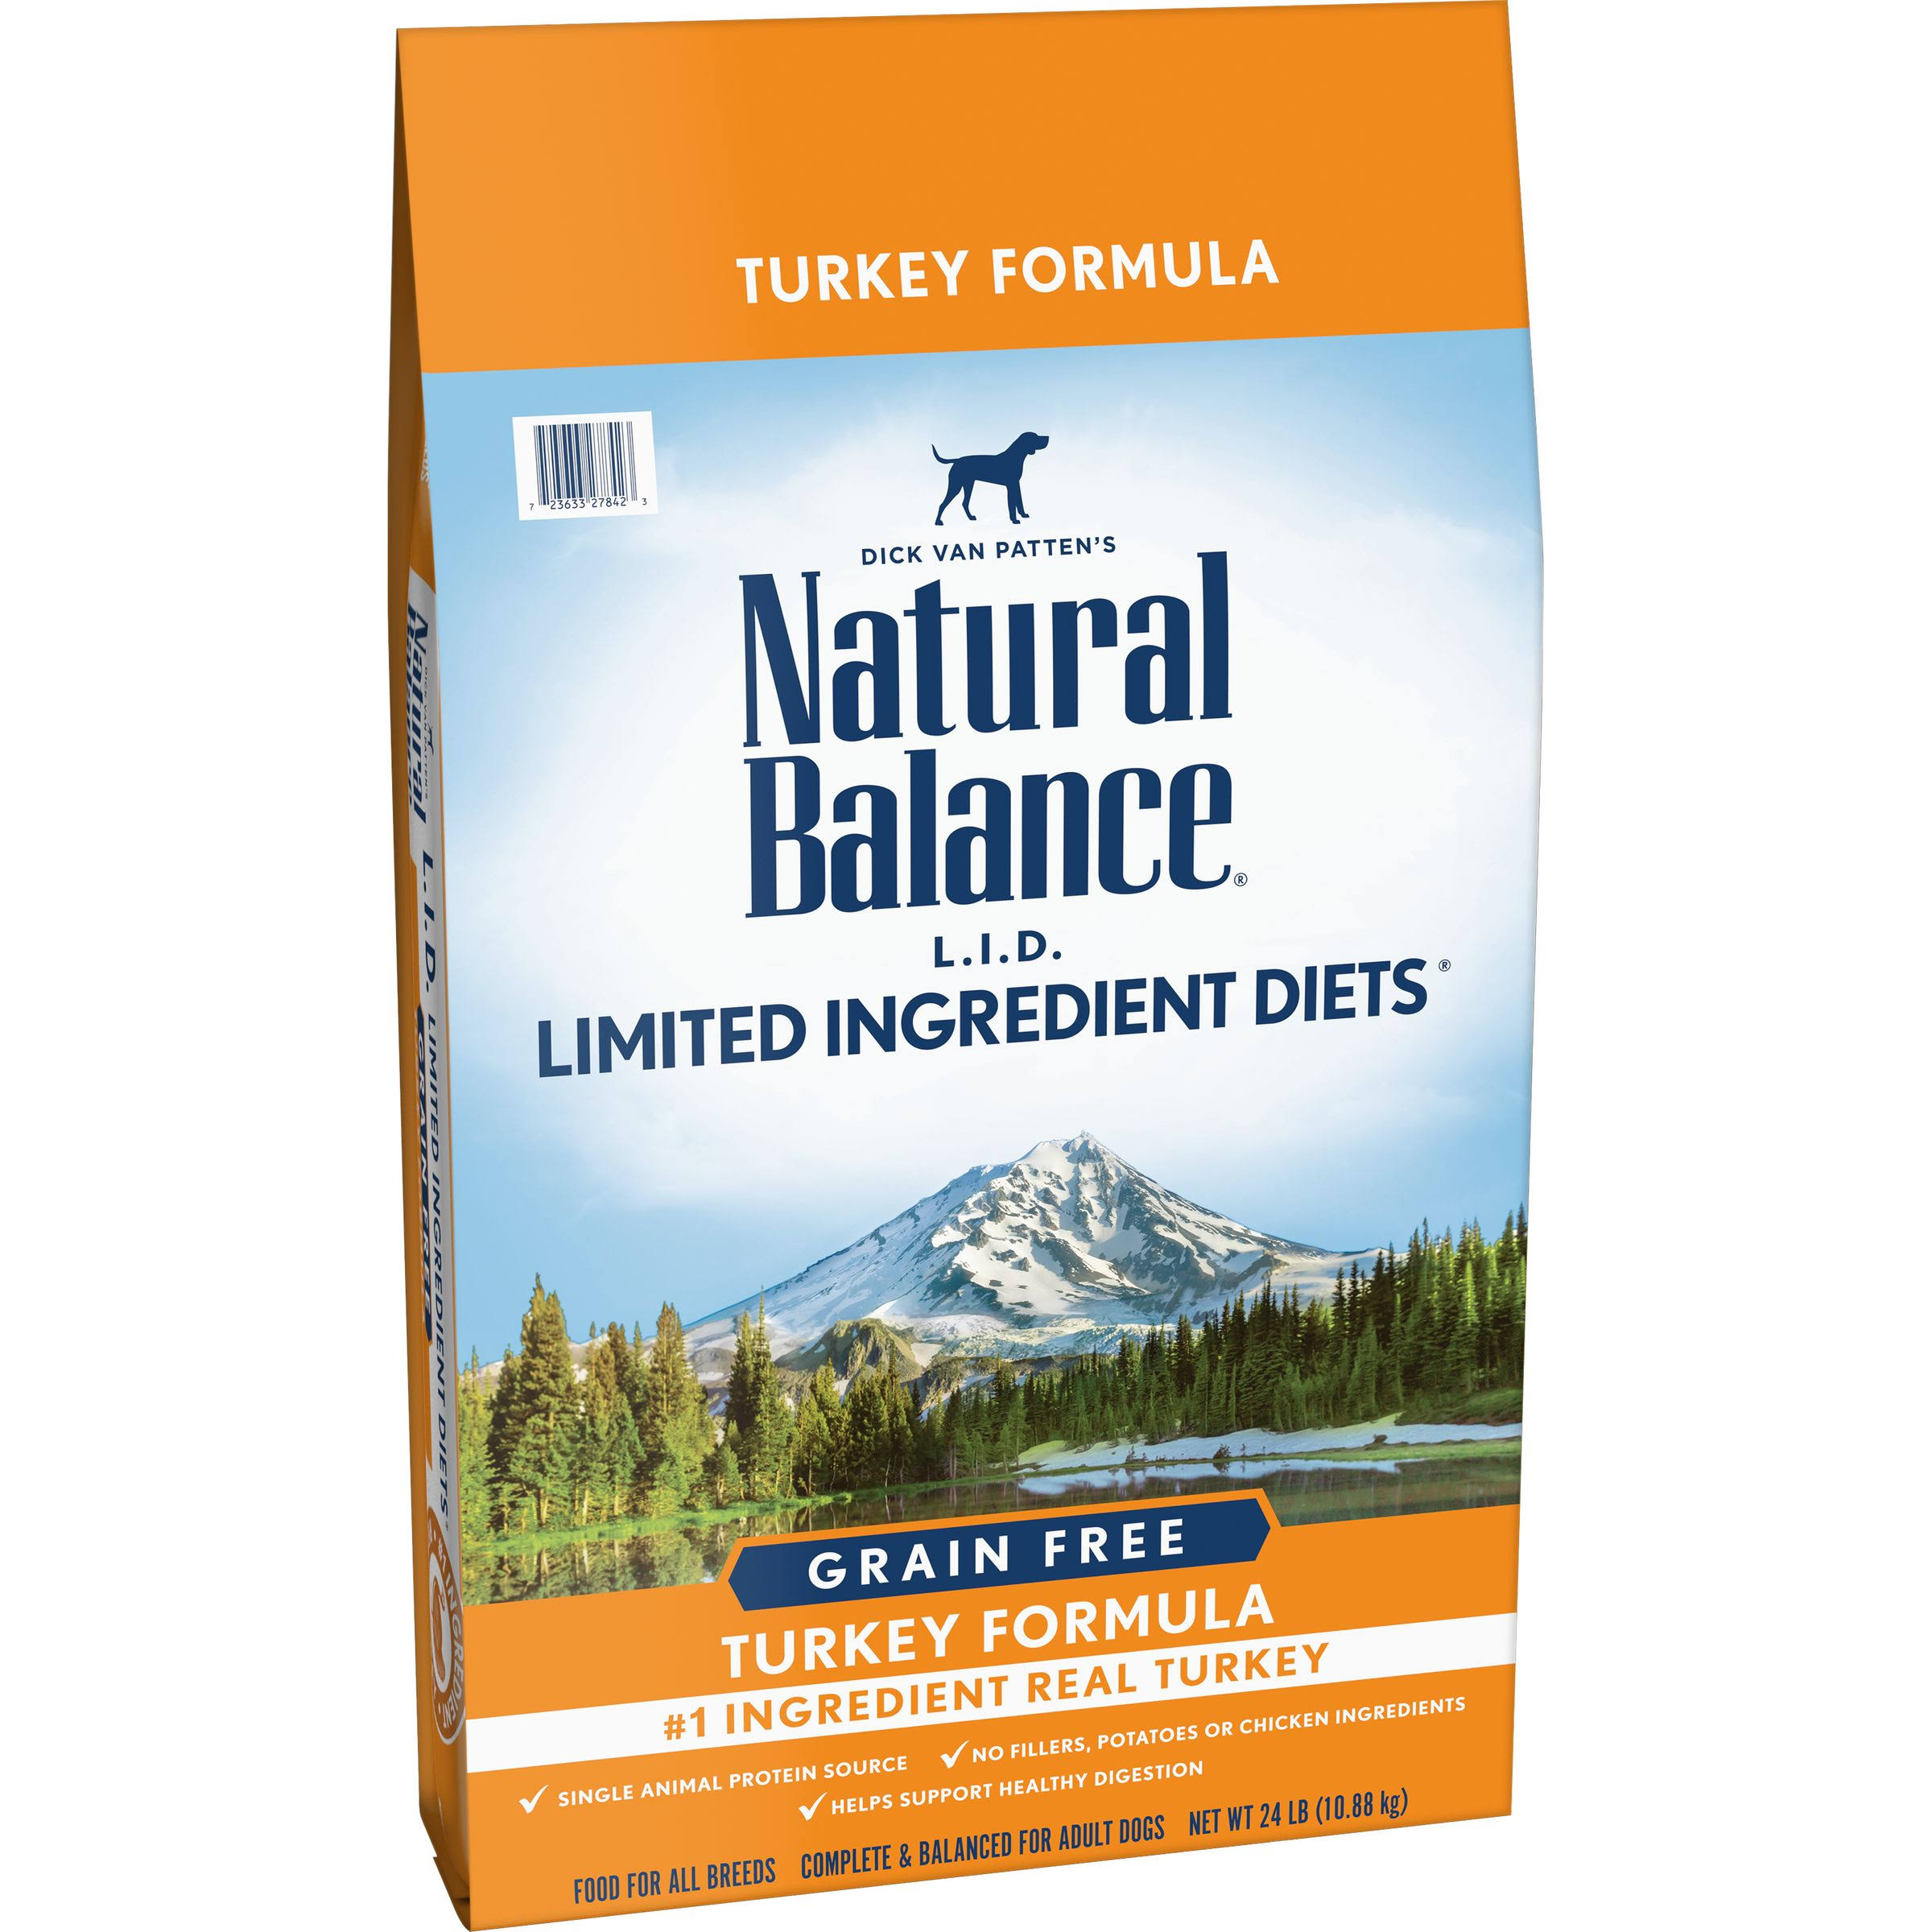 Natural Balance Limited Ingredient Diets High Protein Dry Dog Food - Turkey, 24lbs